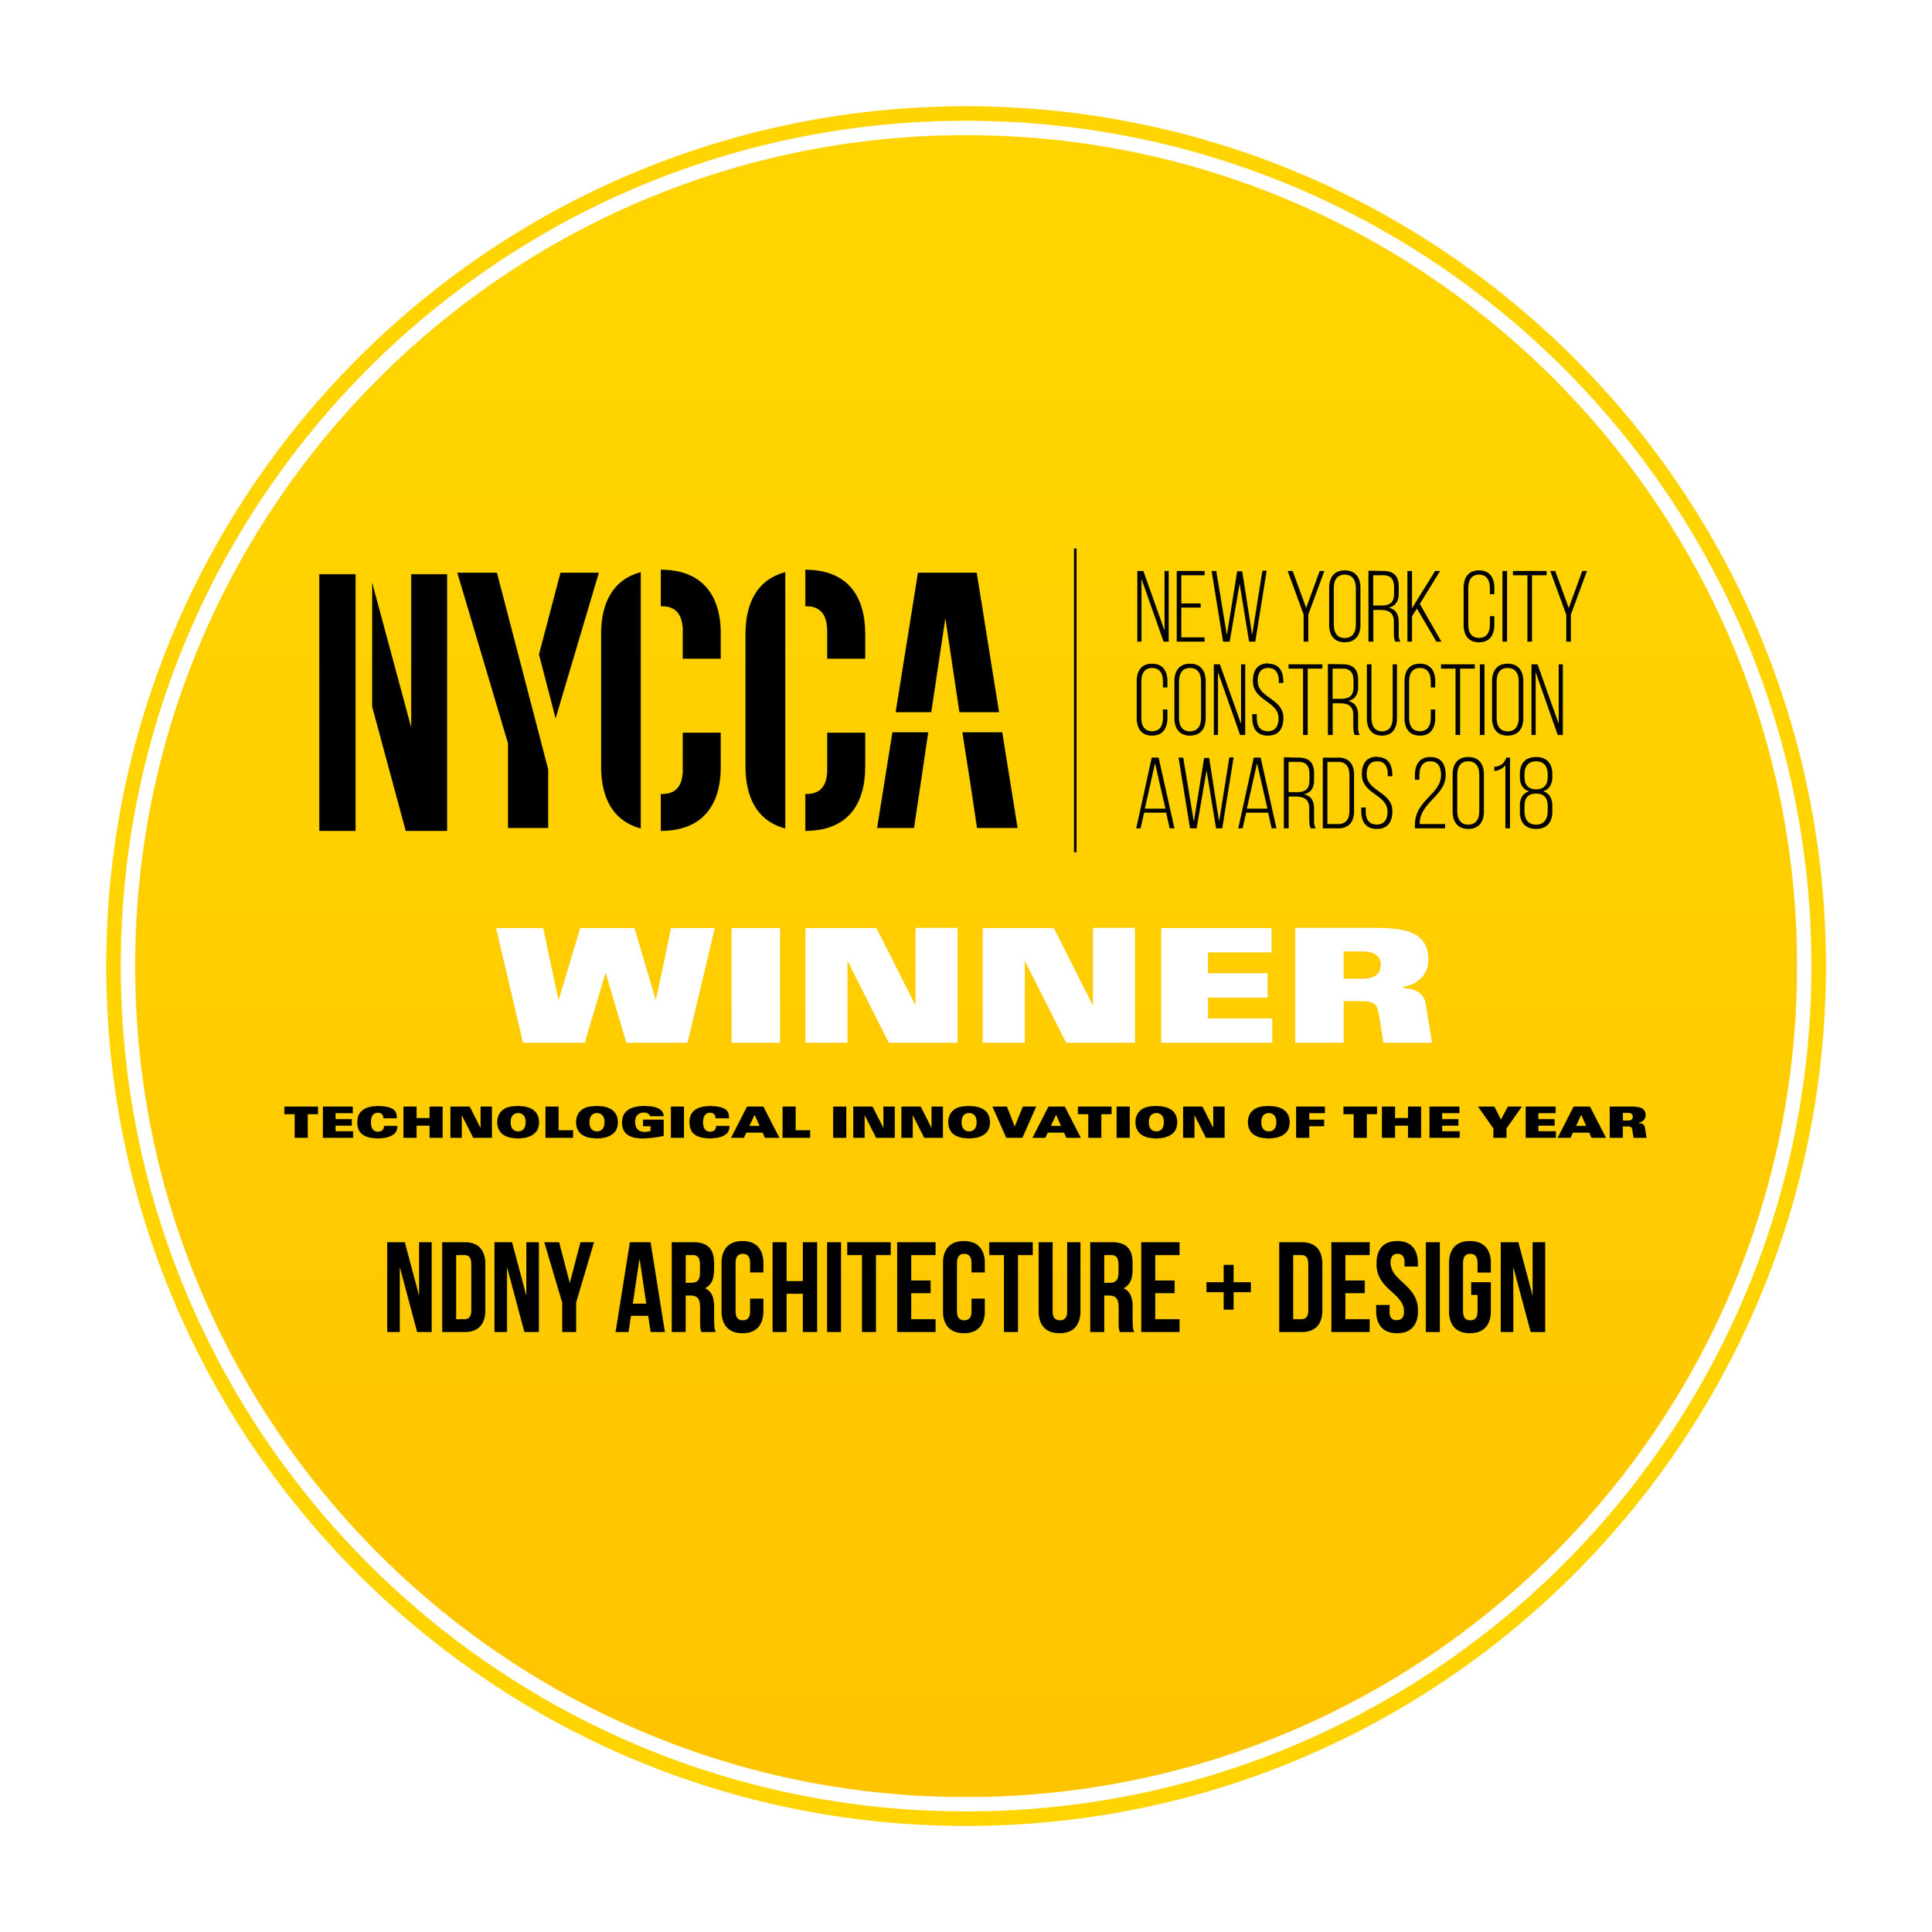 NDNY ARCHITECTURE + DESIGN - Technological Innovation of the Year